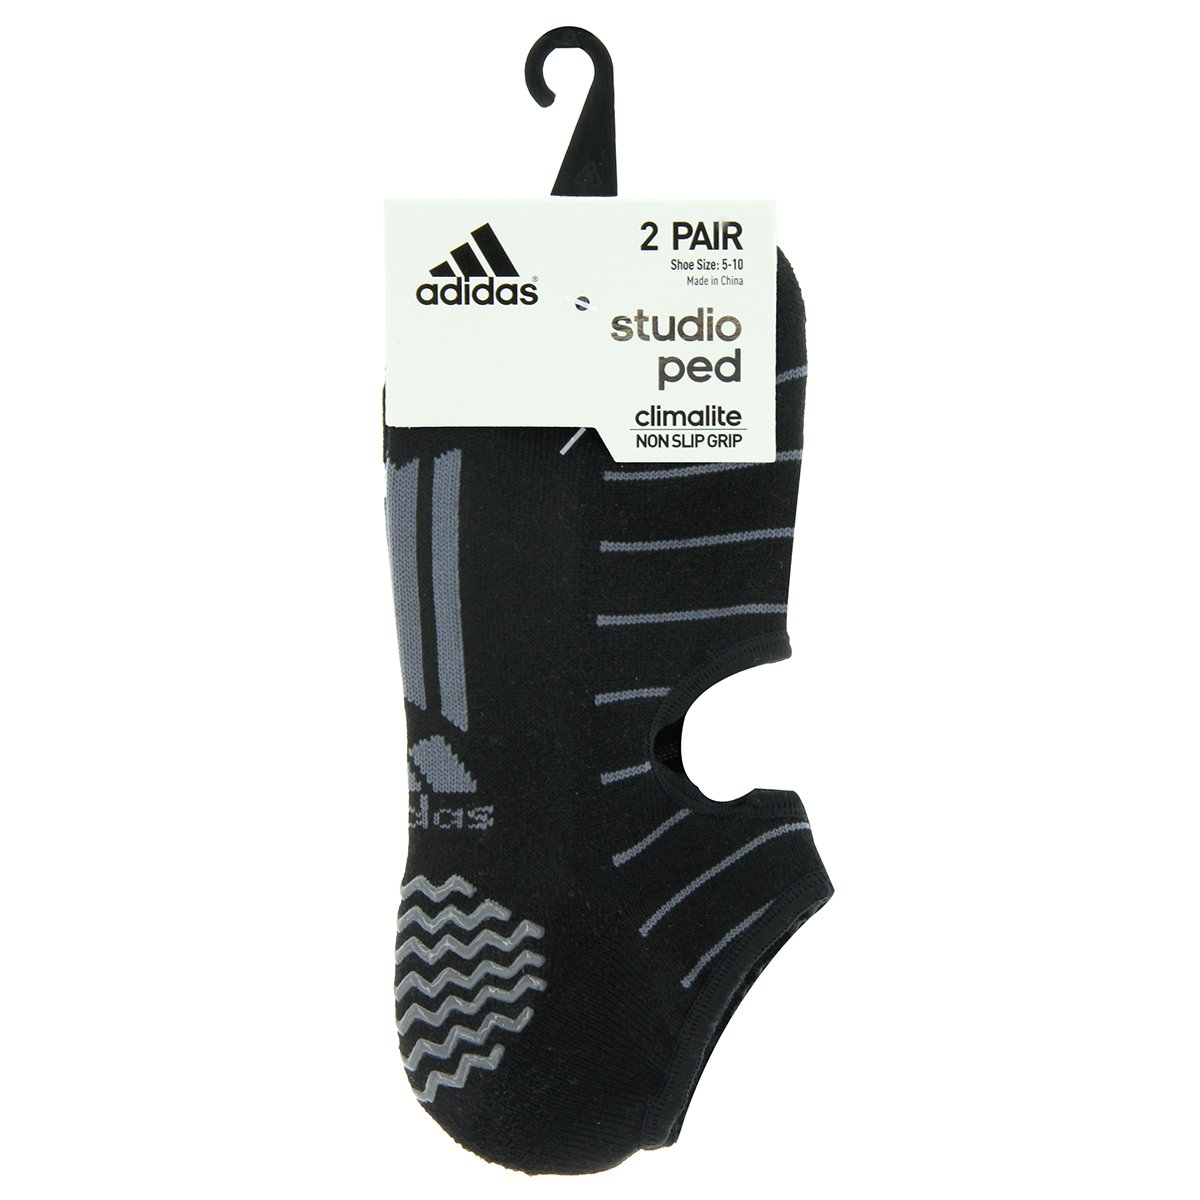 adidas Women's Studio Super No Show Socks (2 Pack)